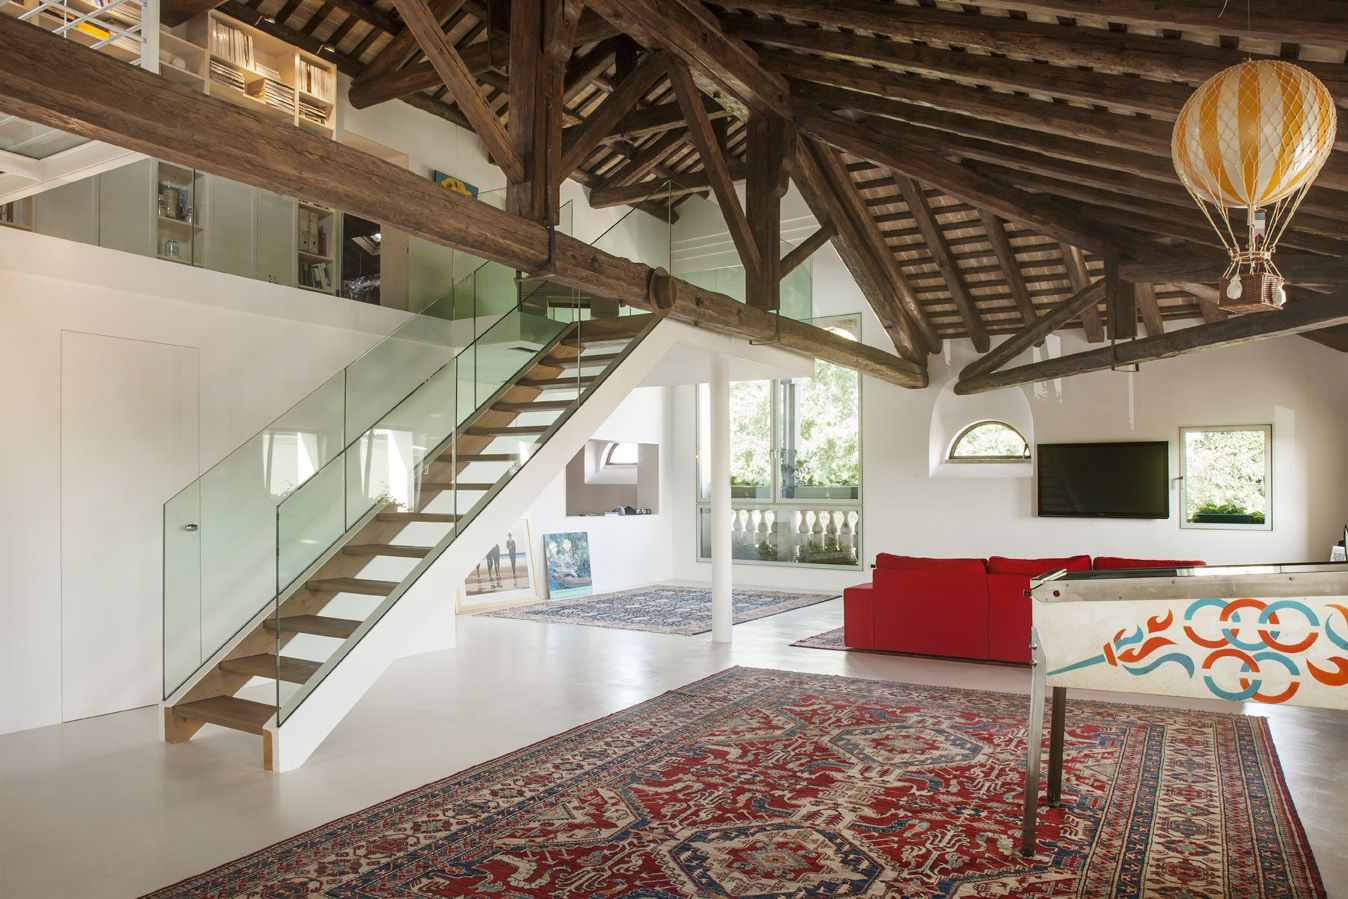 Located in the central Piazza Vittorio Emanuele II in Pieve di Soligo, the historic building is the result of distinct constructive incidents succeeded during the years. The building is rectangular and it develops on three levels. Many transformation